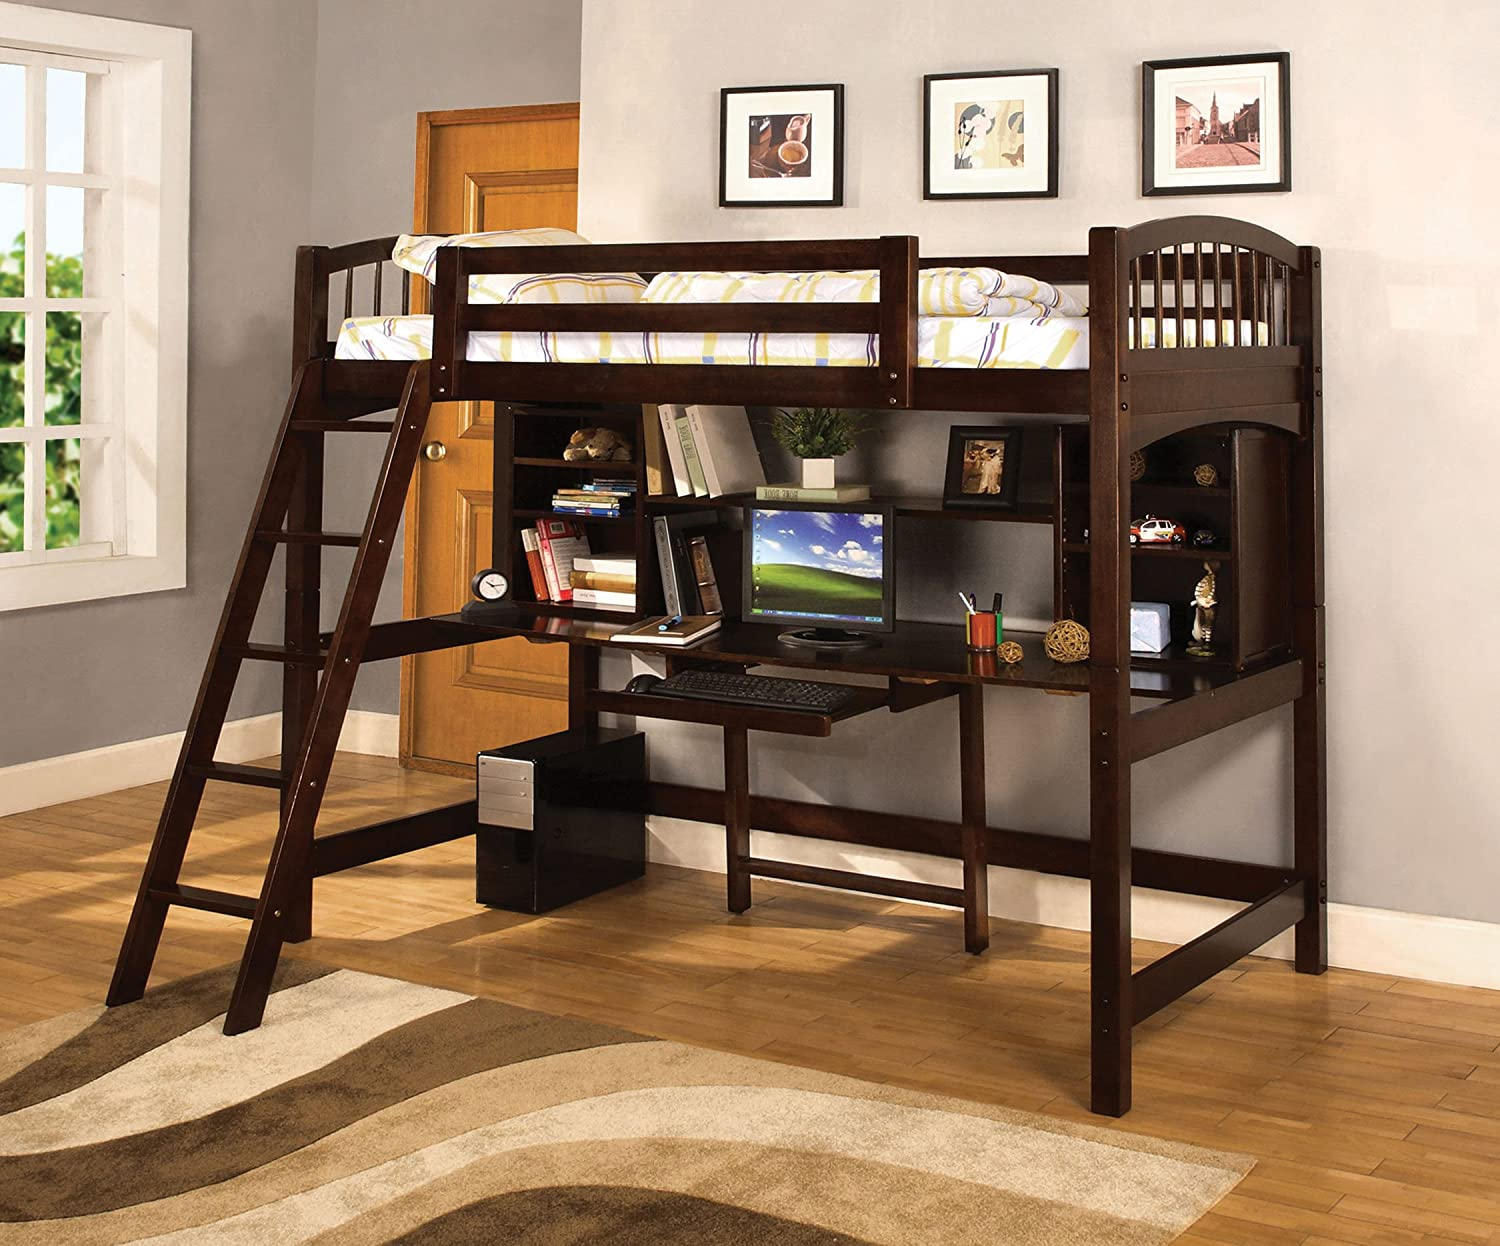 Amazon.com: Furniture of America Ashby Twin Loft Bed with ...